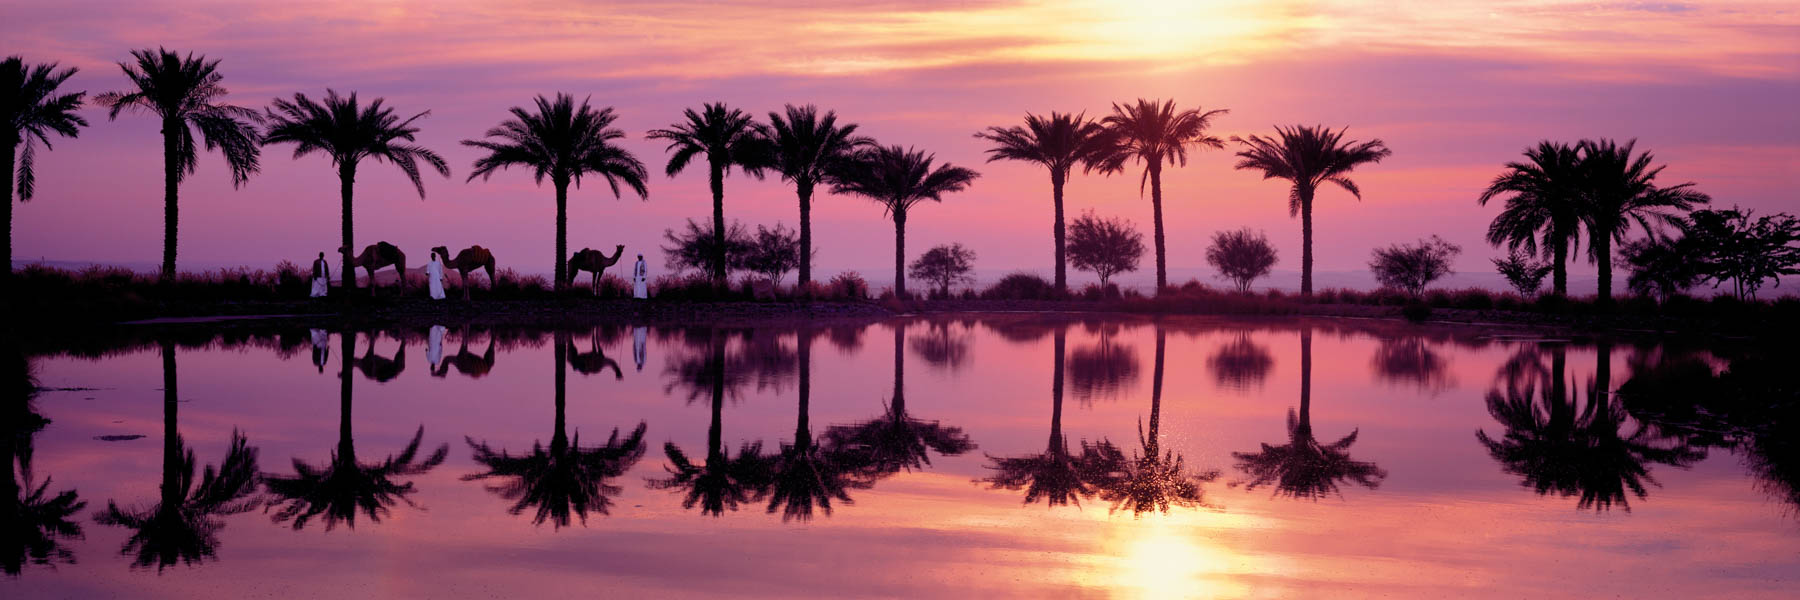 Sunset reflections of camels and pam trees in Abu Dhabi.